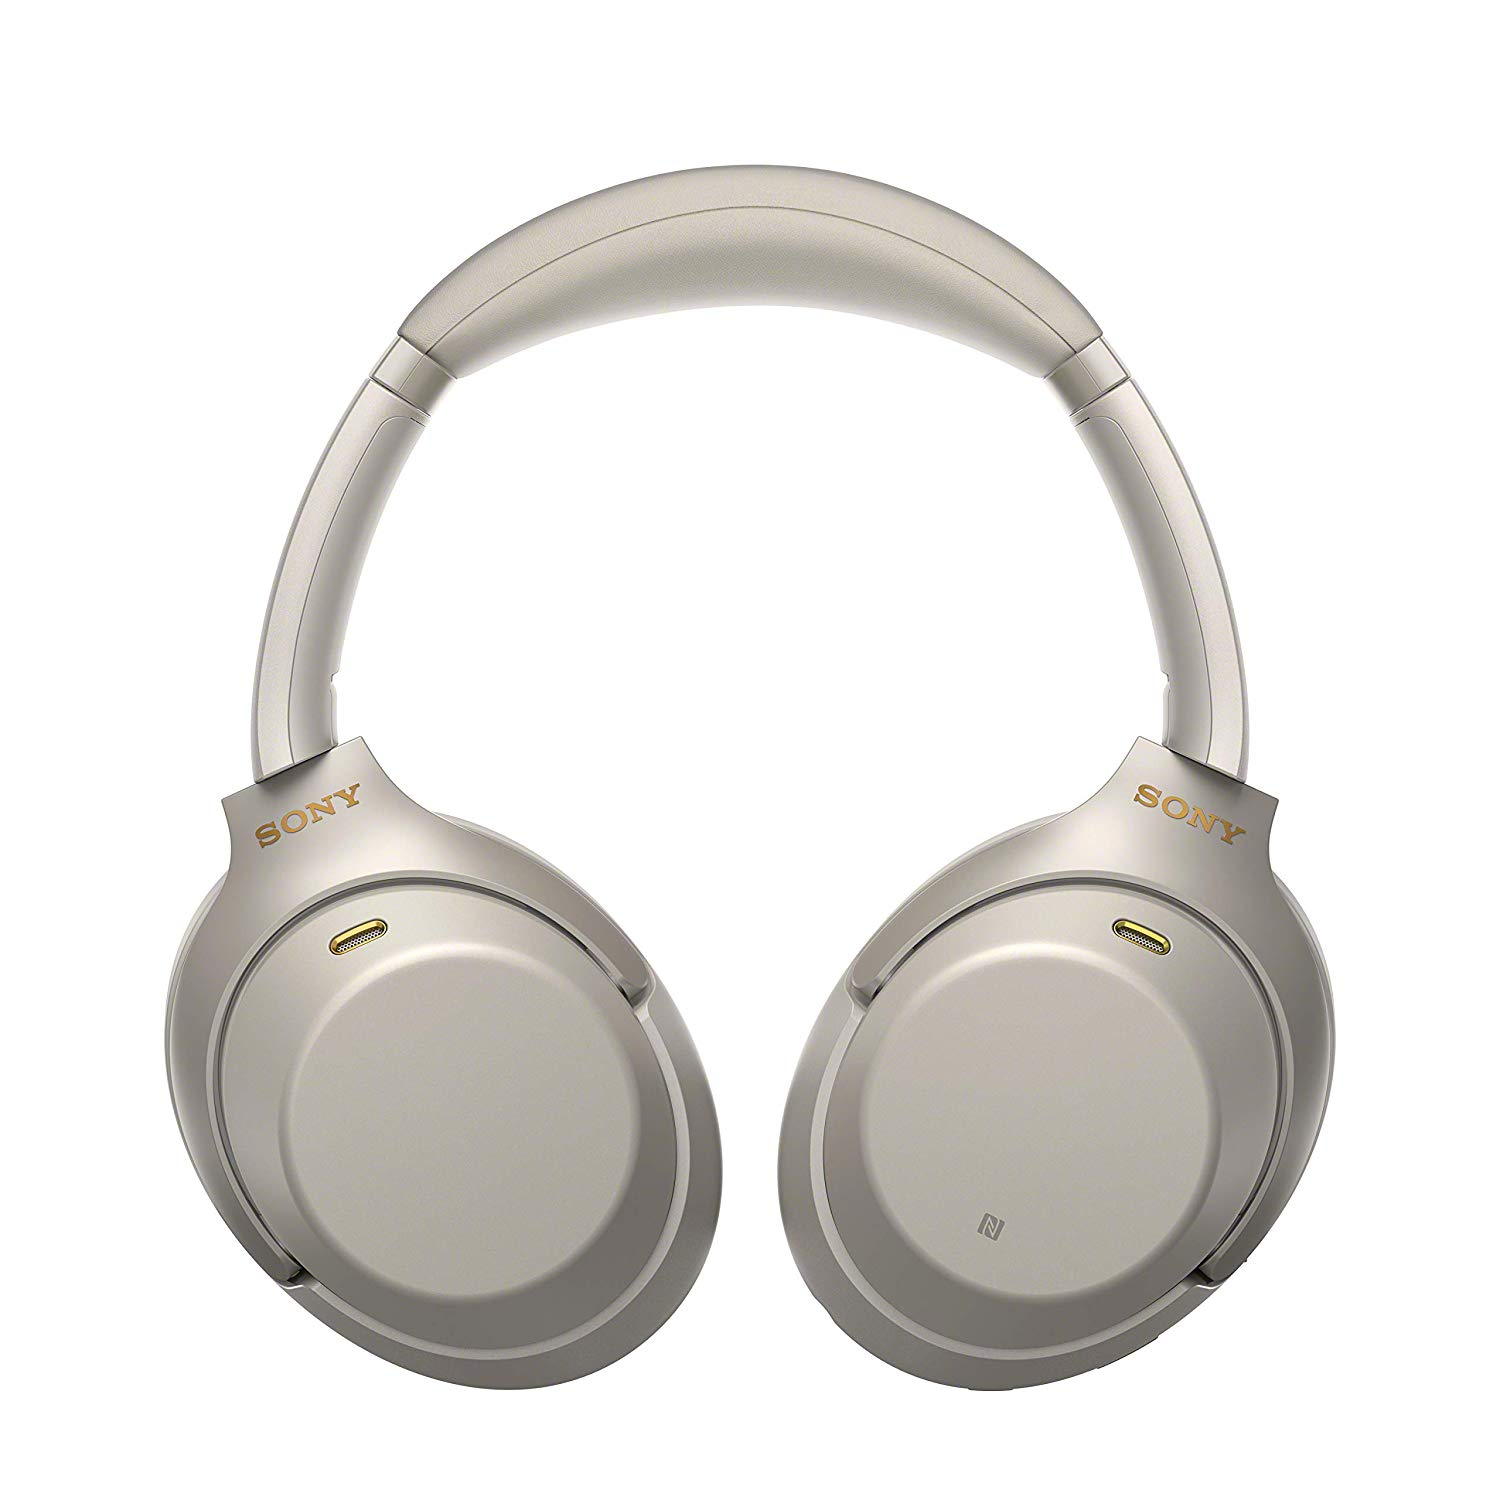 Sony-WH-1000XM3-Wireless-Noise-Canceling-Over-Ear-Headphones-w-Google-Assistant thumbnail 16